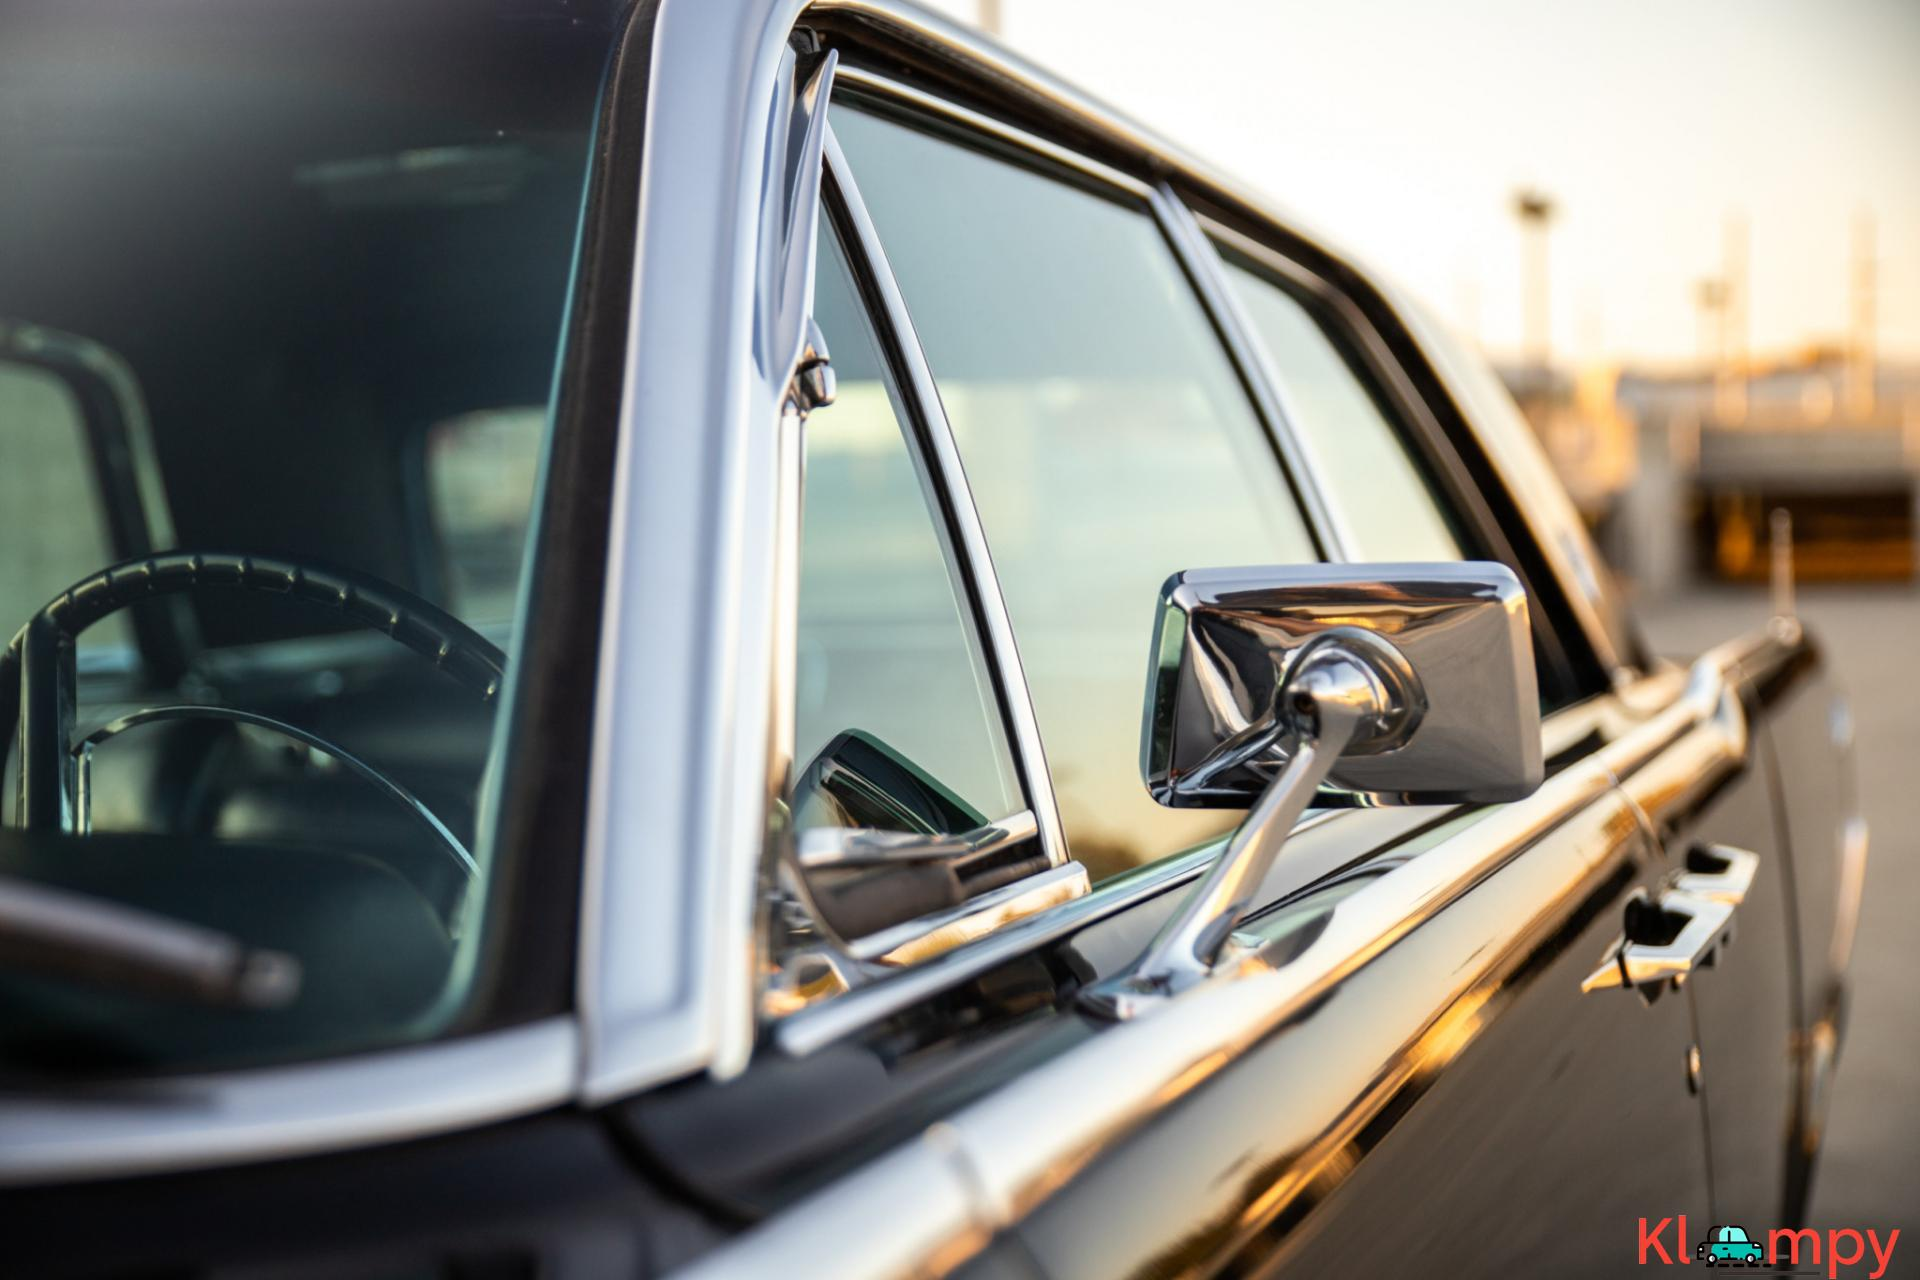 1962 Lincoln Continental Presidential Black - 16/19